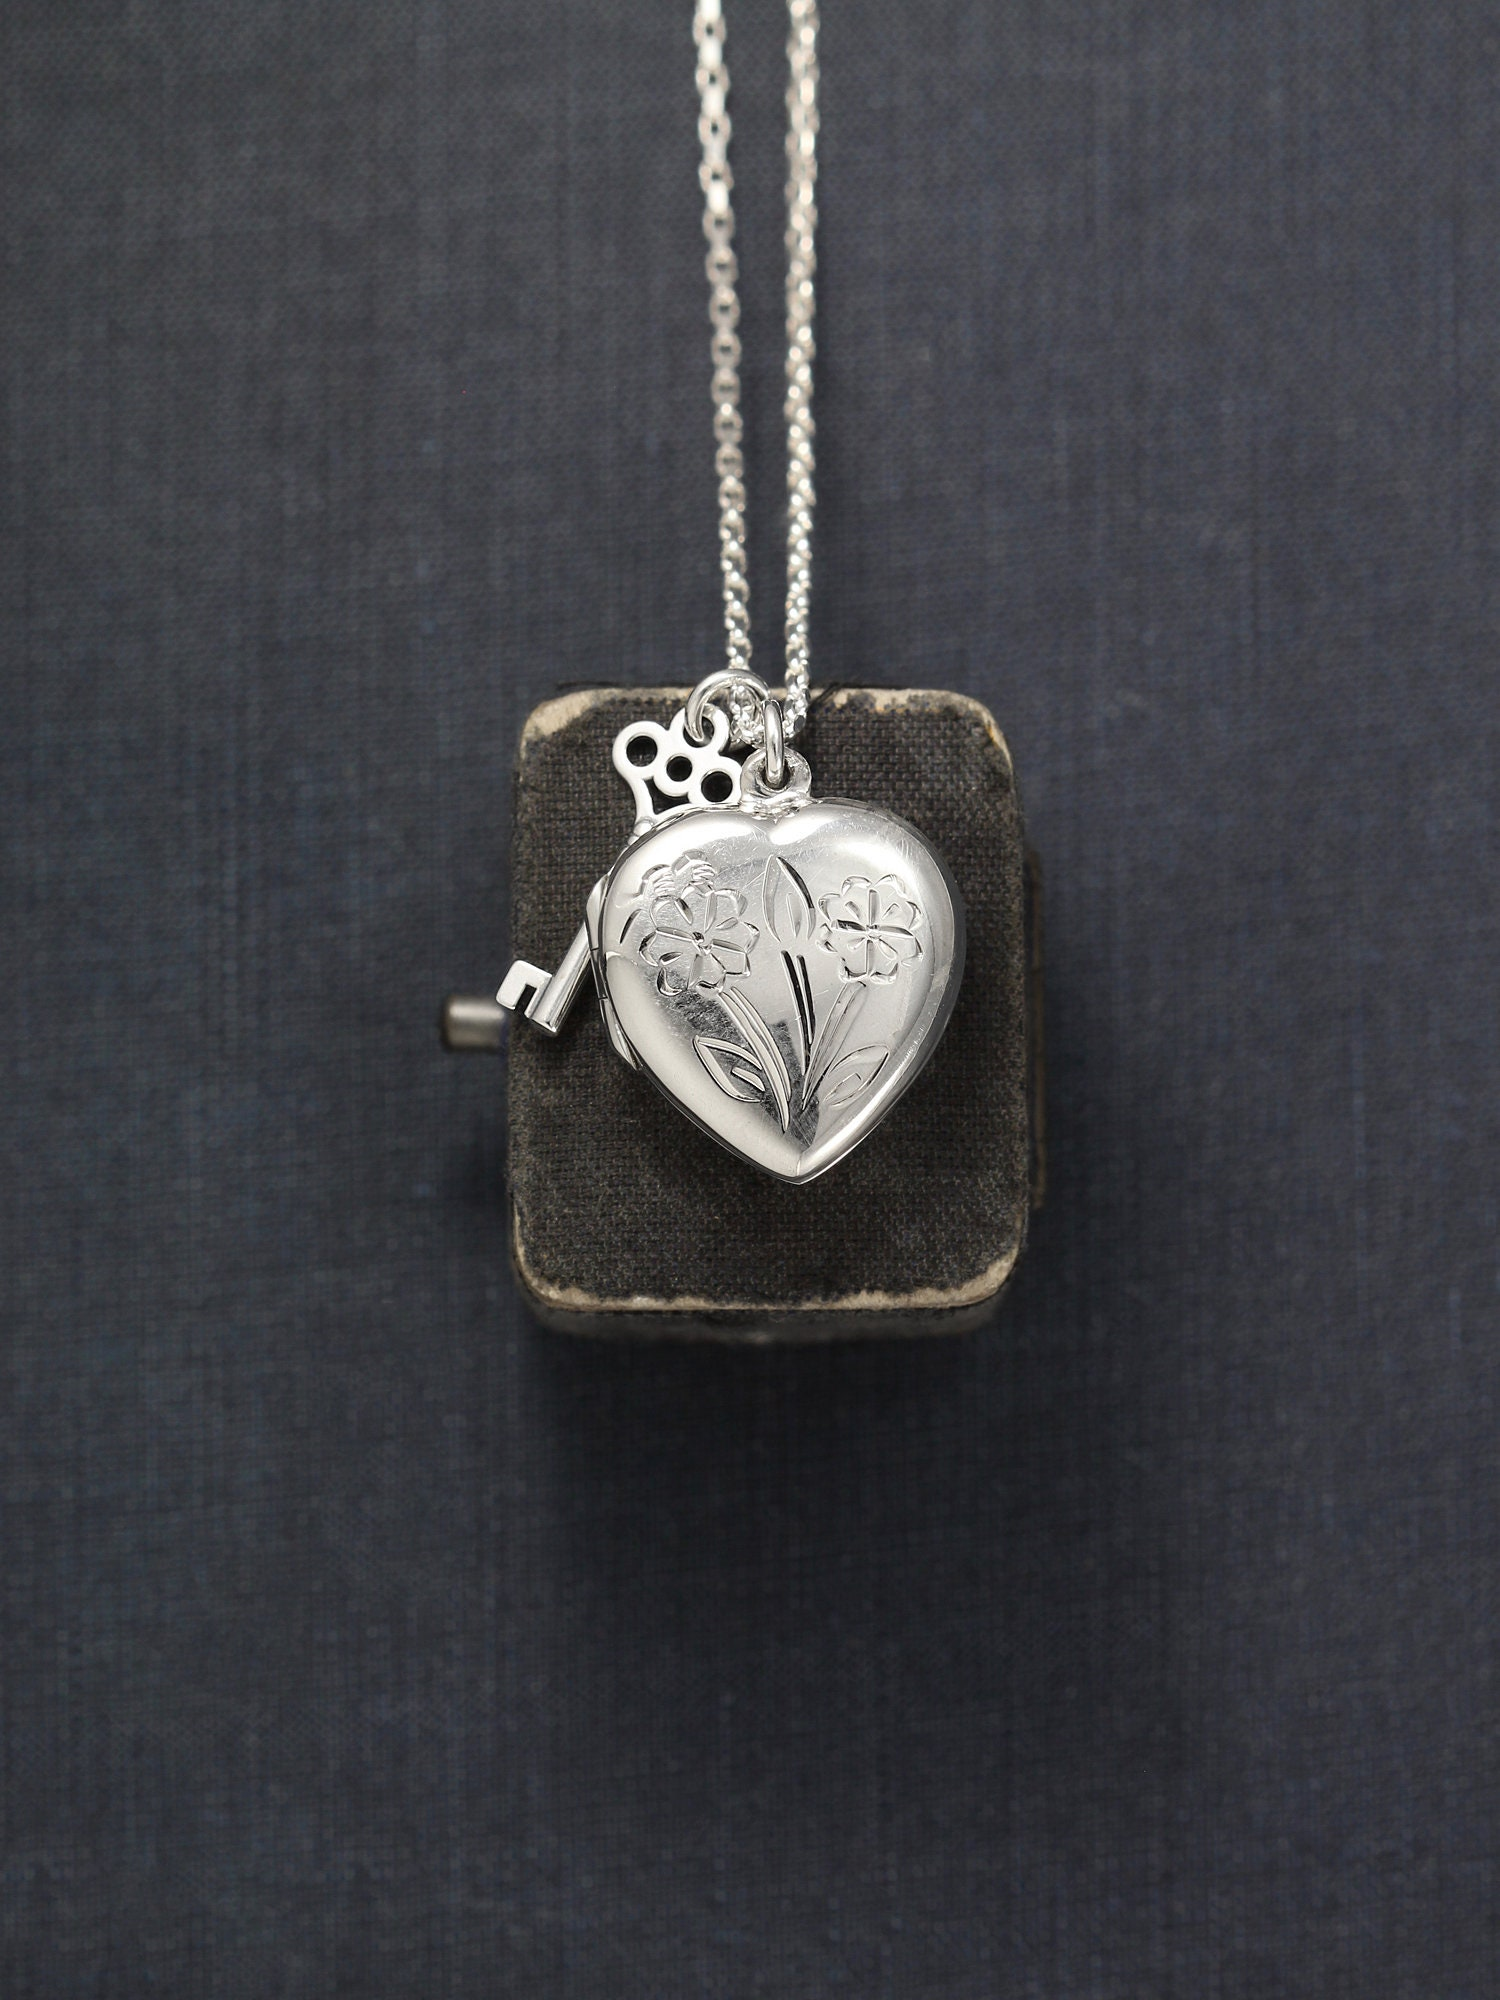 ca32cb1214 Sterling Silver Heart Locket Necklace with Key Charm, Flower Engraved Love  Pendant on Long 25